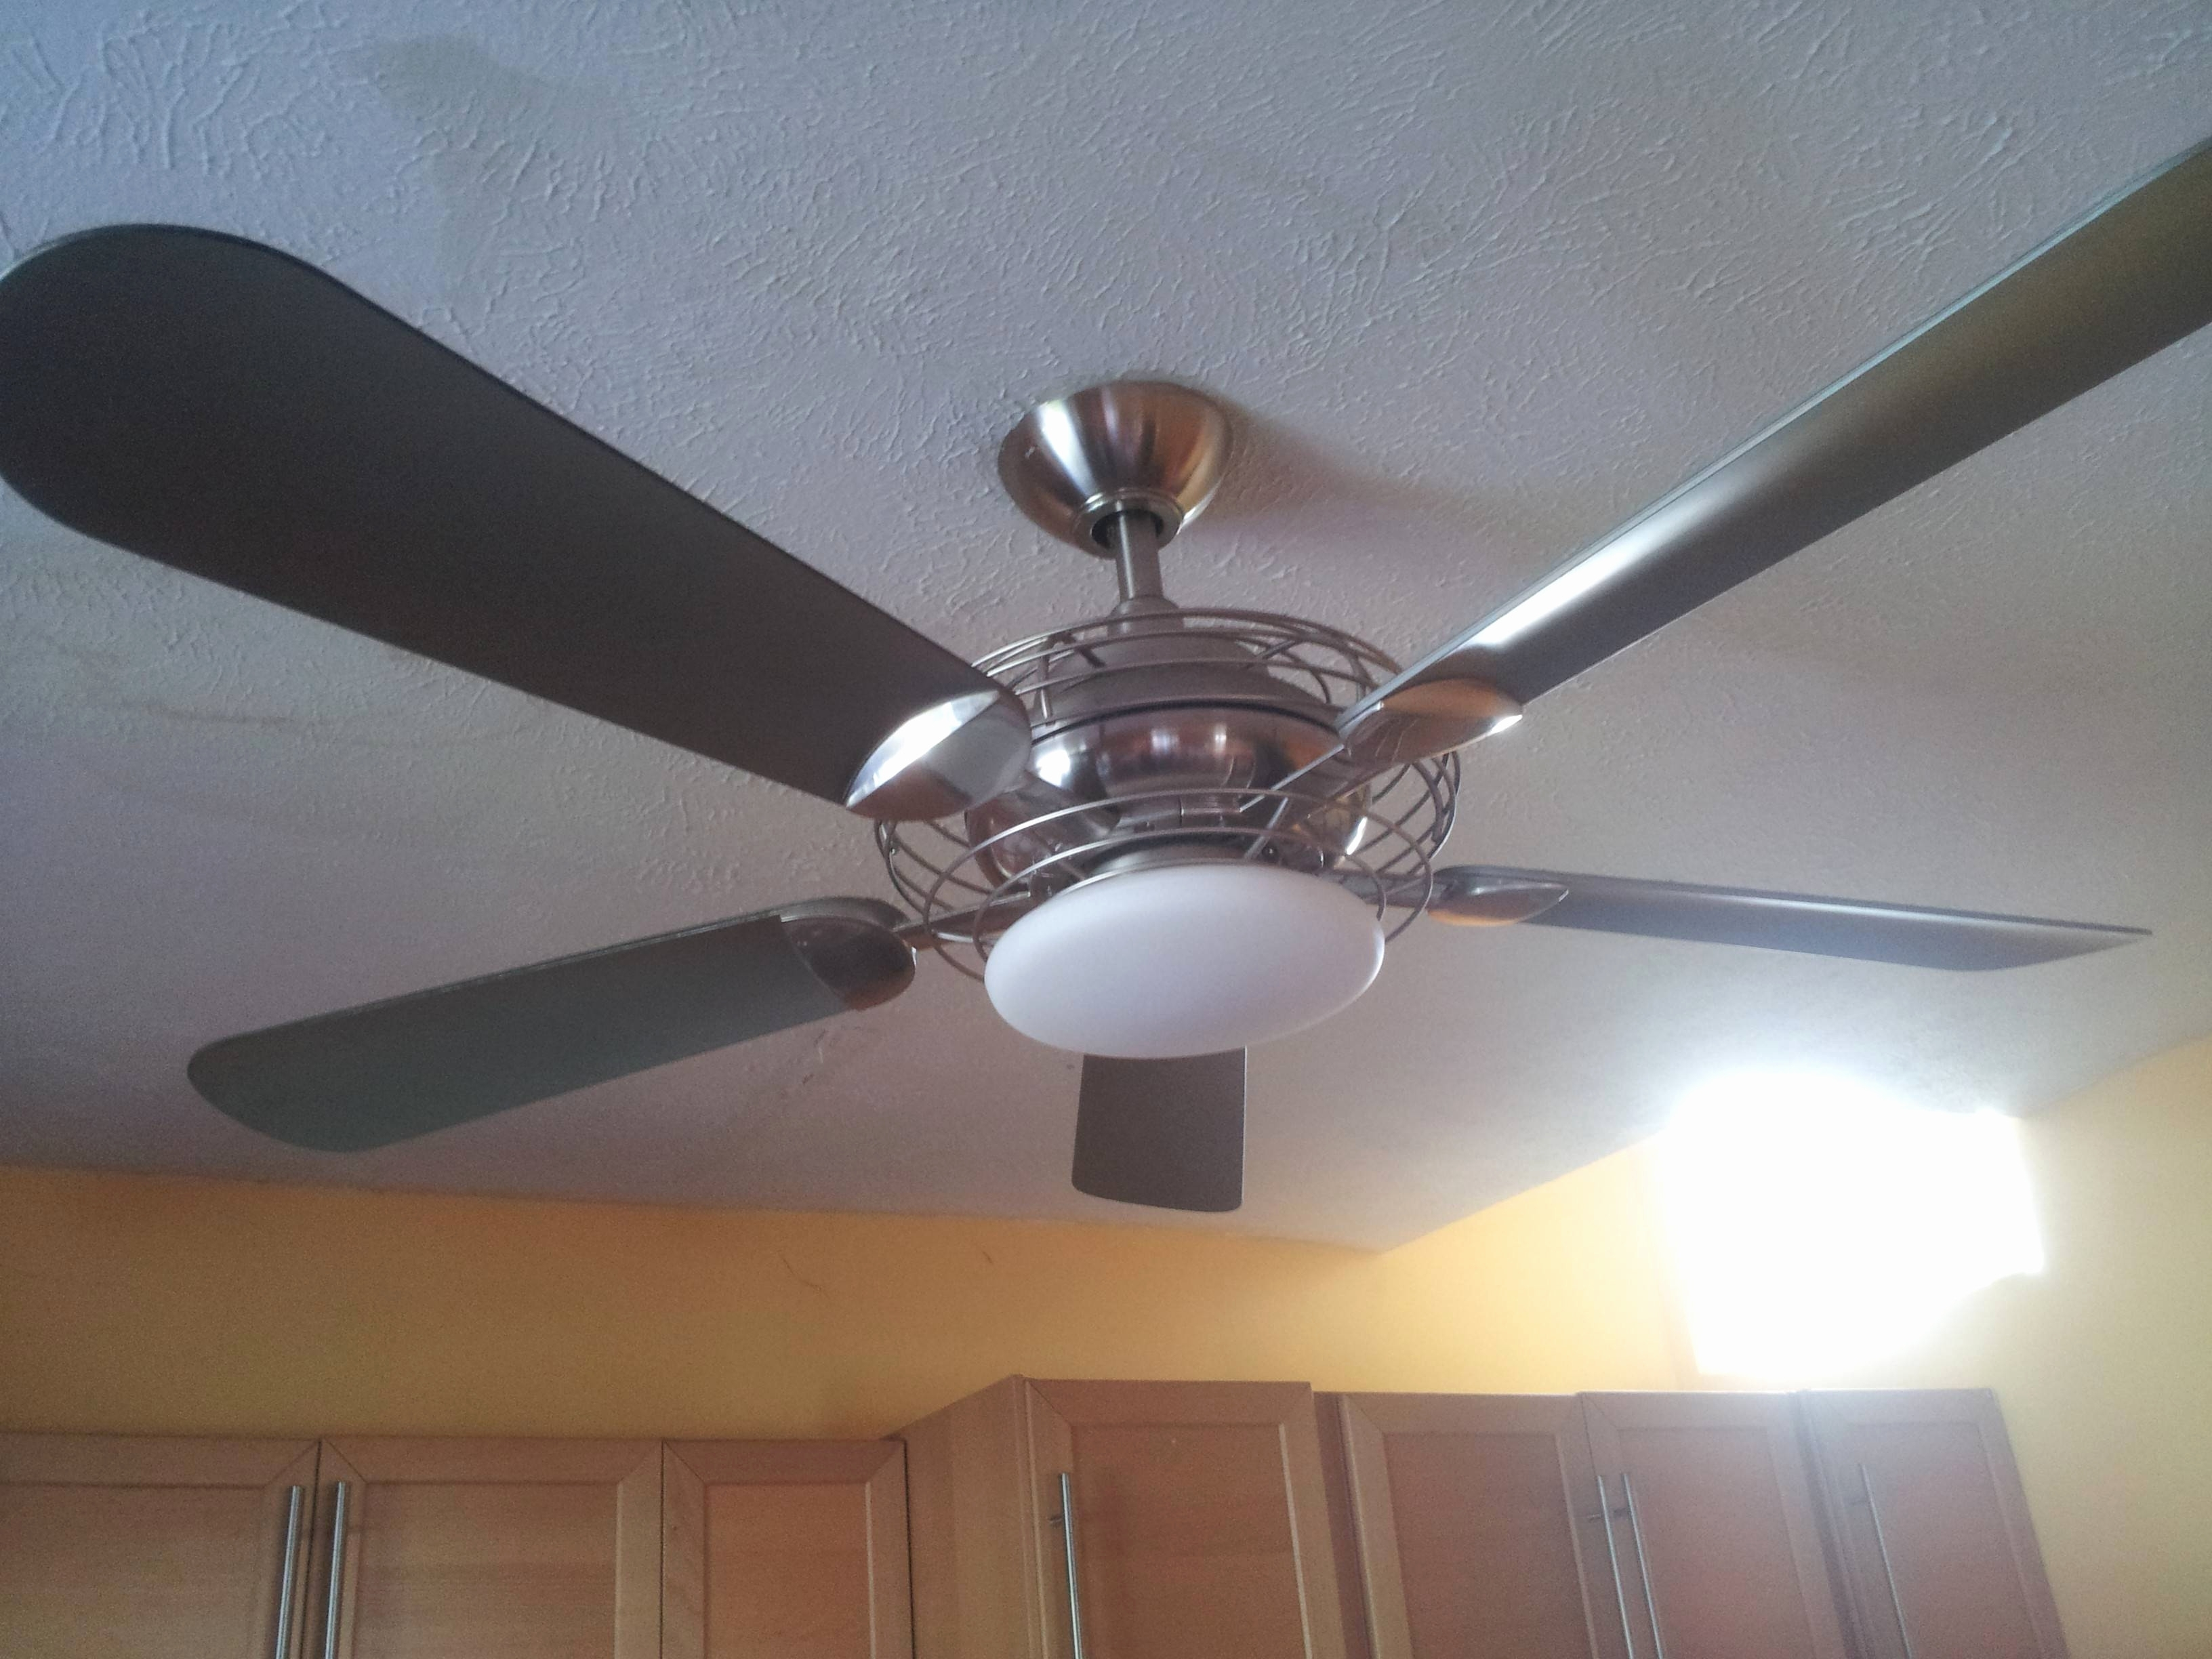 2018 36 Inch Outdoor Ceiling Fans With Light Flush Mount Throughout 36 Inch Flush Mount Ceiling Fans Lovely Archive Of May 2018 Blue (Gallery 20 of 20)